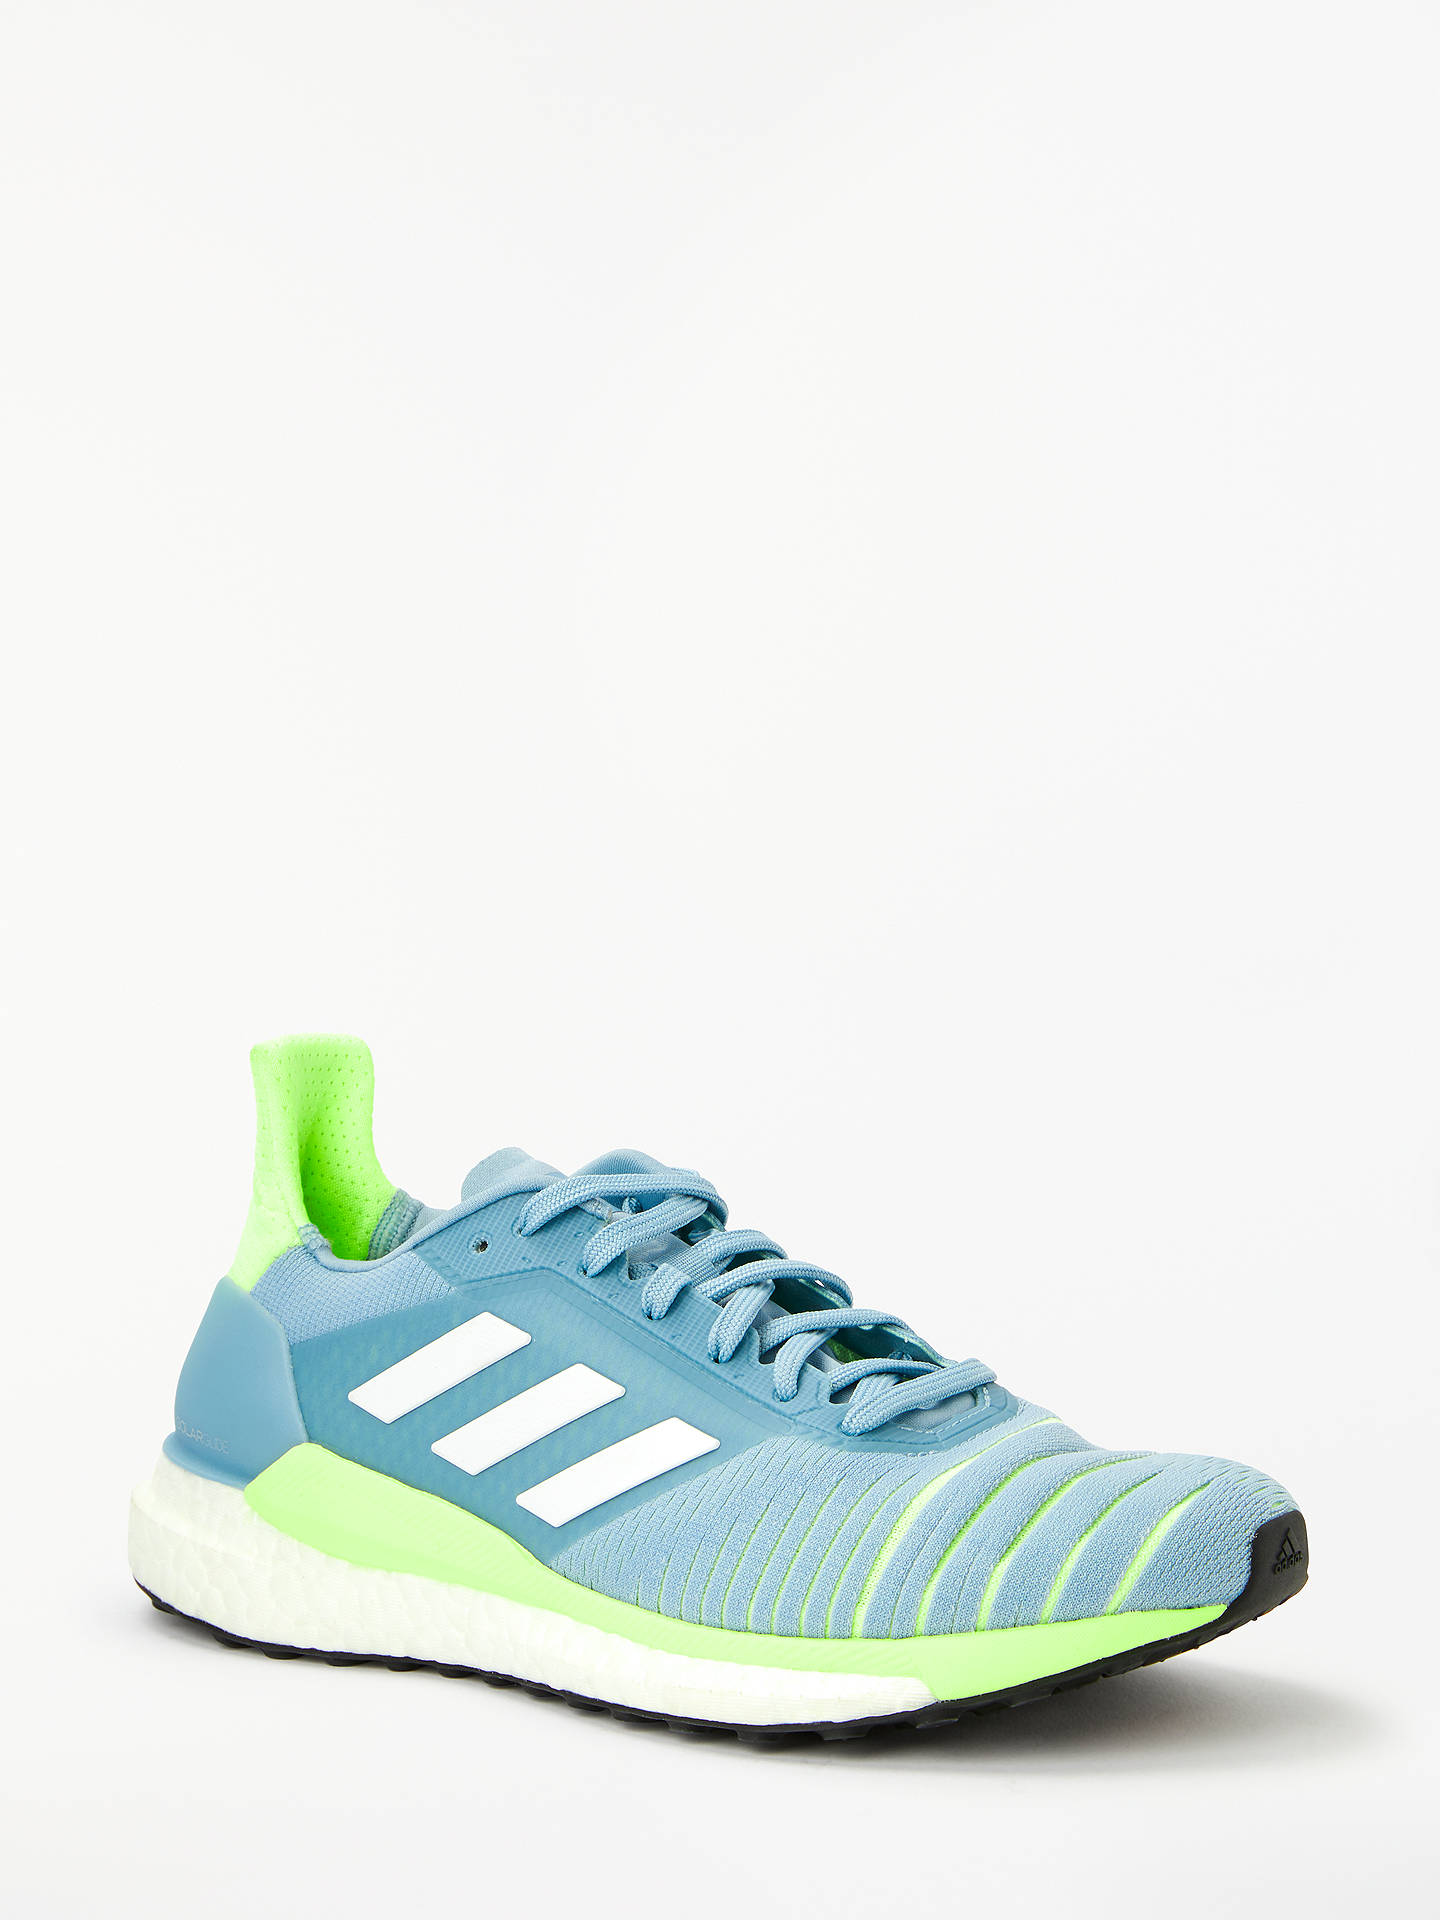 0f257688a0355 adidas Solar Glide Women s Running Shoes at John Lewis   Partners